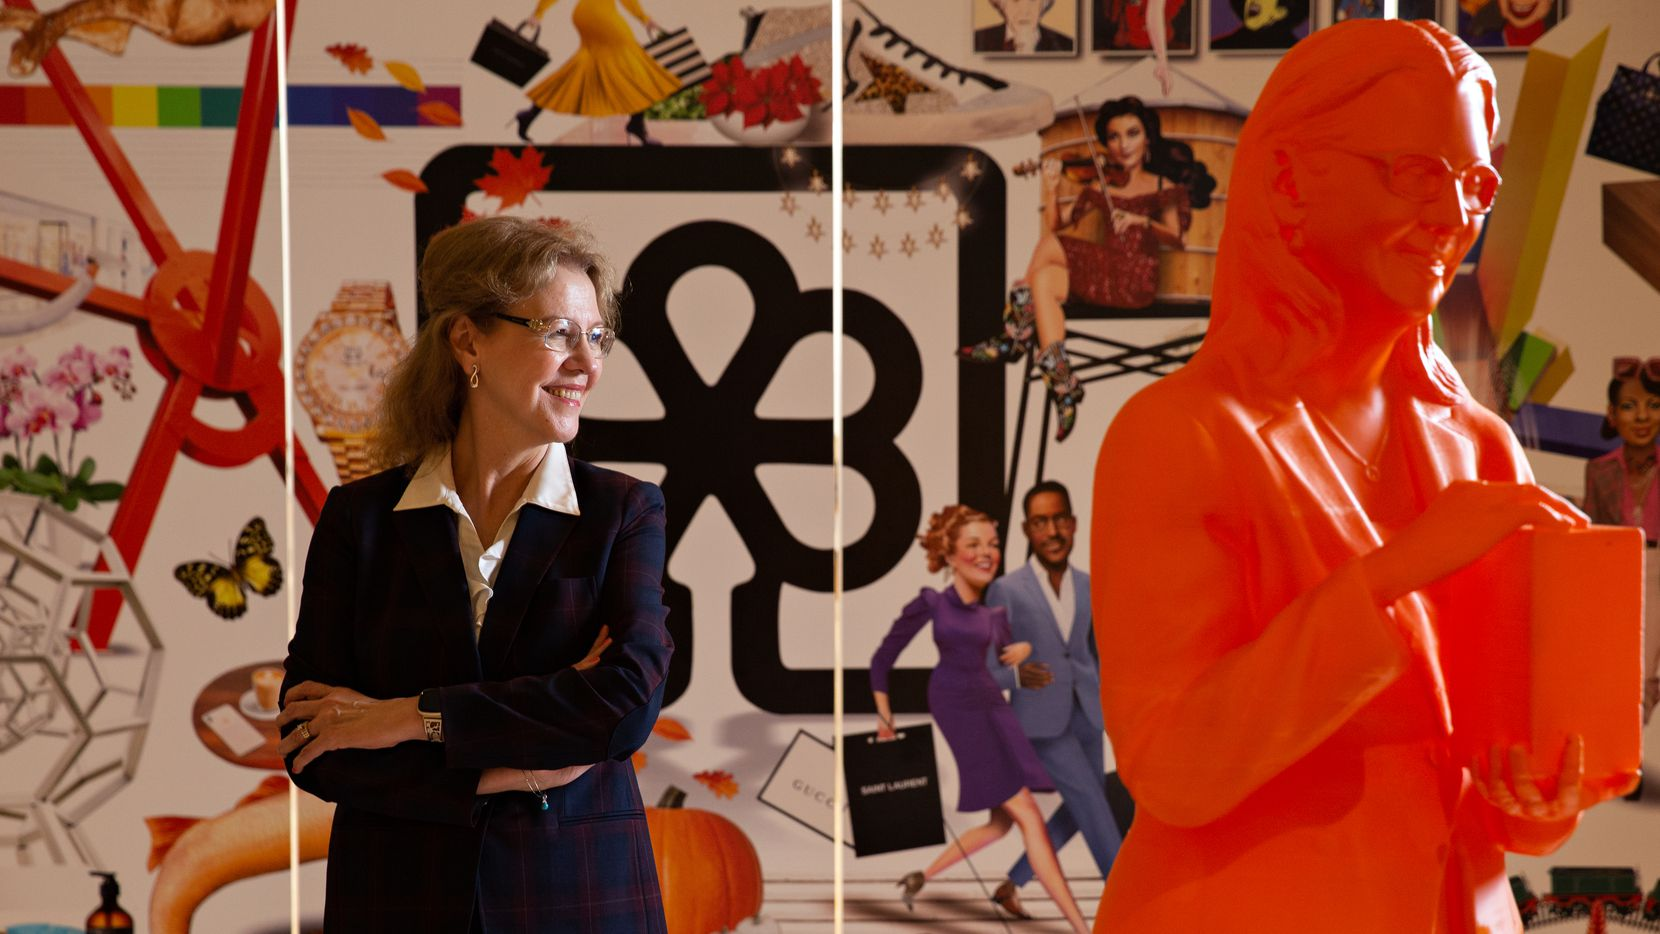 Dr. Minerva Codero is one of 125 women included in #IfThenSheCan exhibit, honoring women who are leaders in STEM. Her 3D printed orange statue is displayed at the North Park Center in Dallas, TX. (Shelby Tauber/Special Contributor)